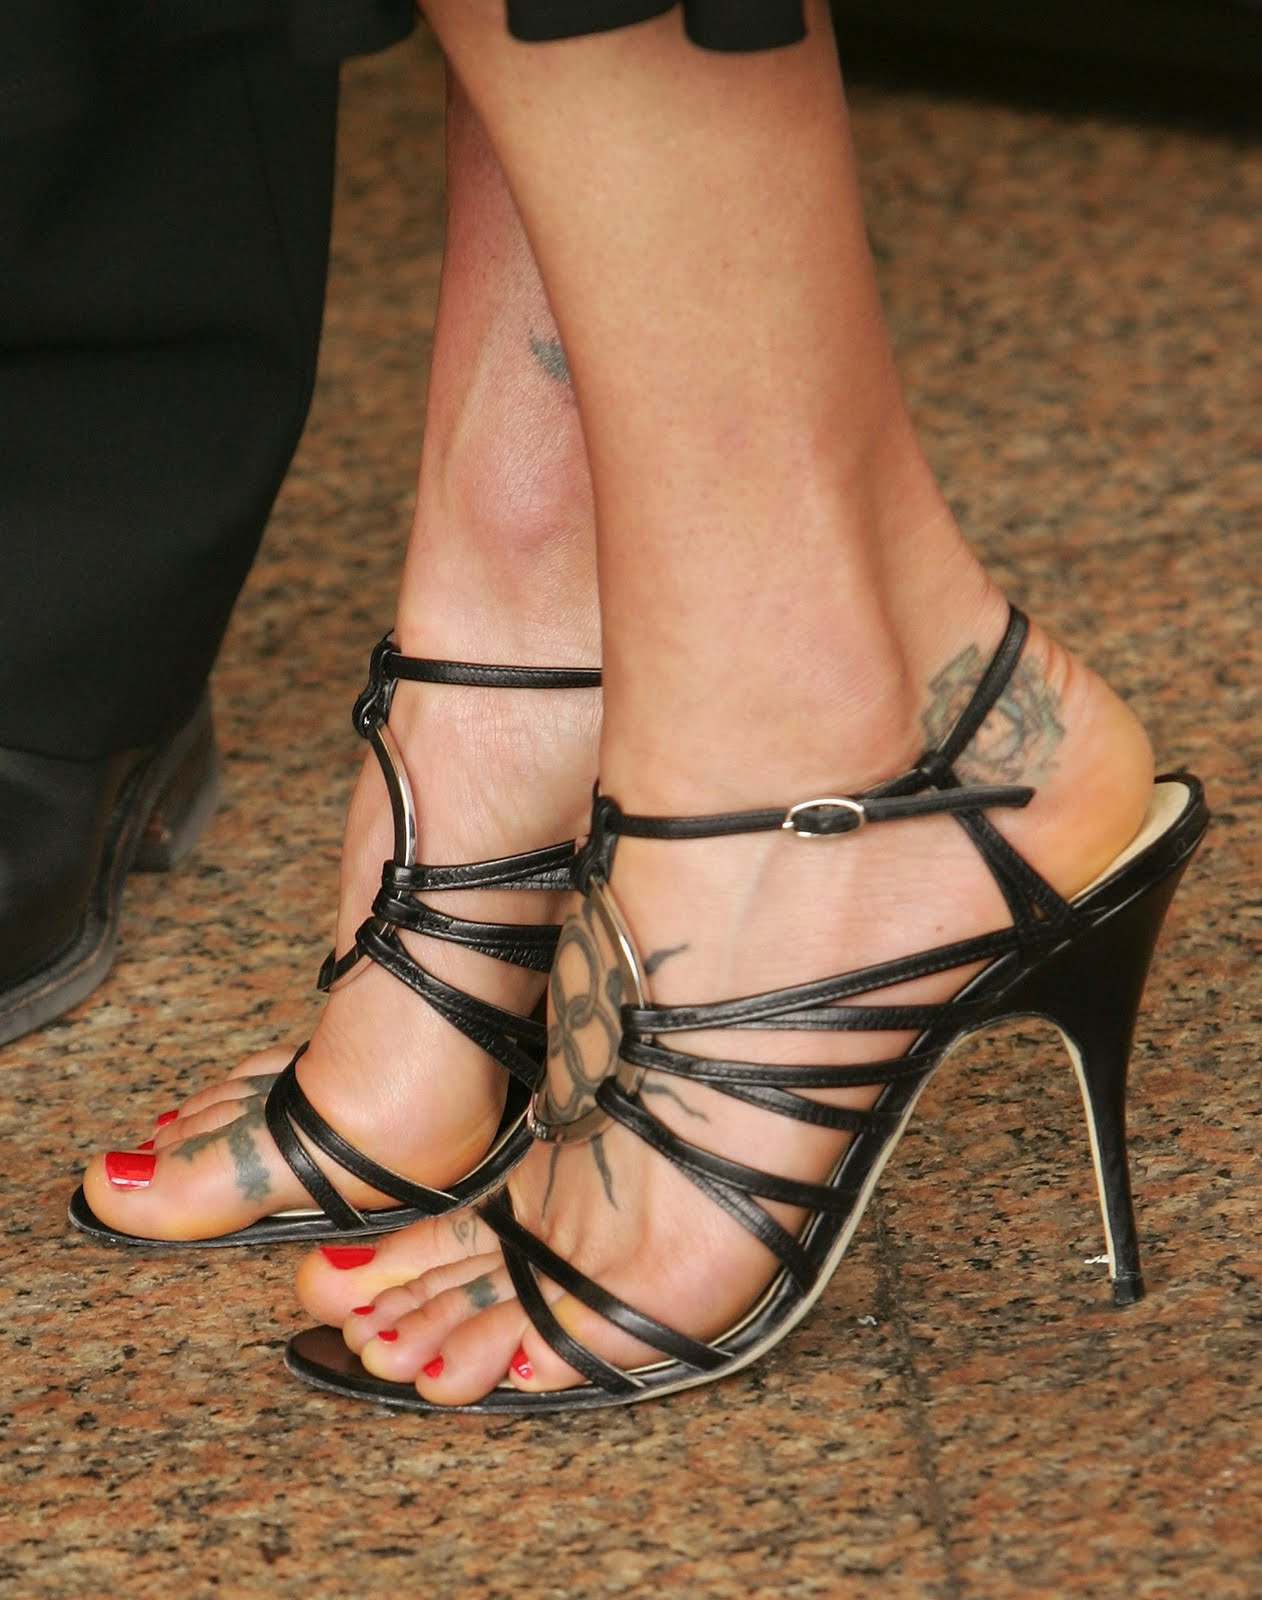 Checkout Some Nice Pictures Of Her Feet, Legs And Toes